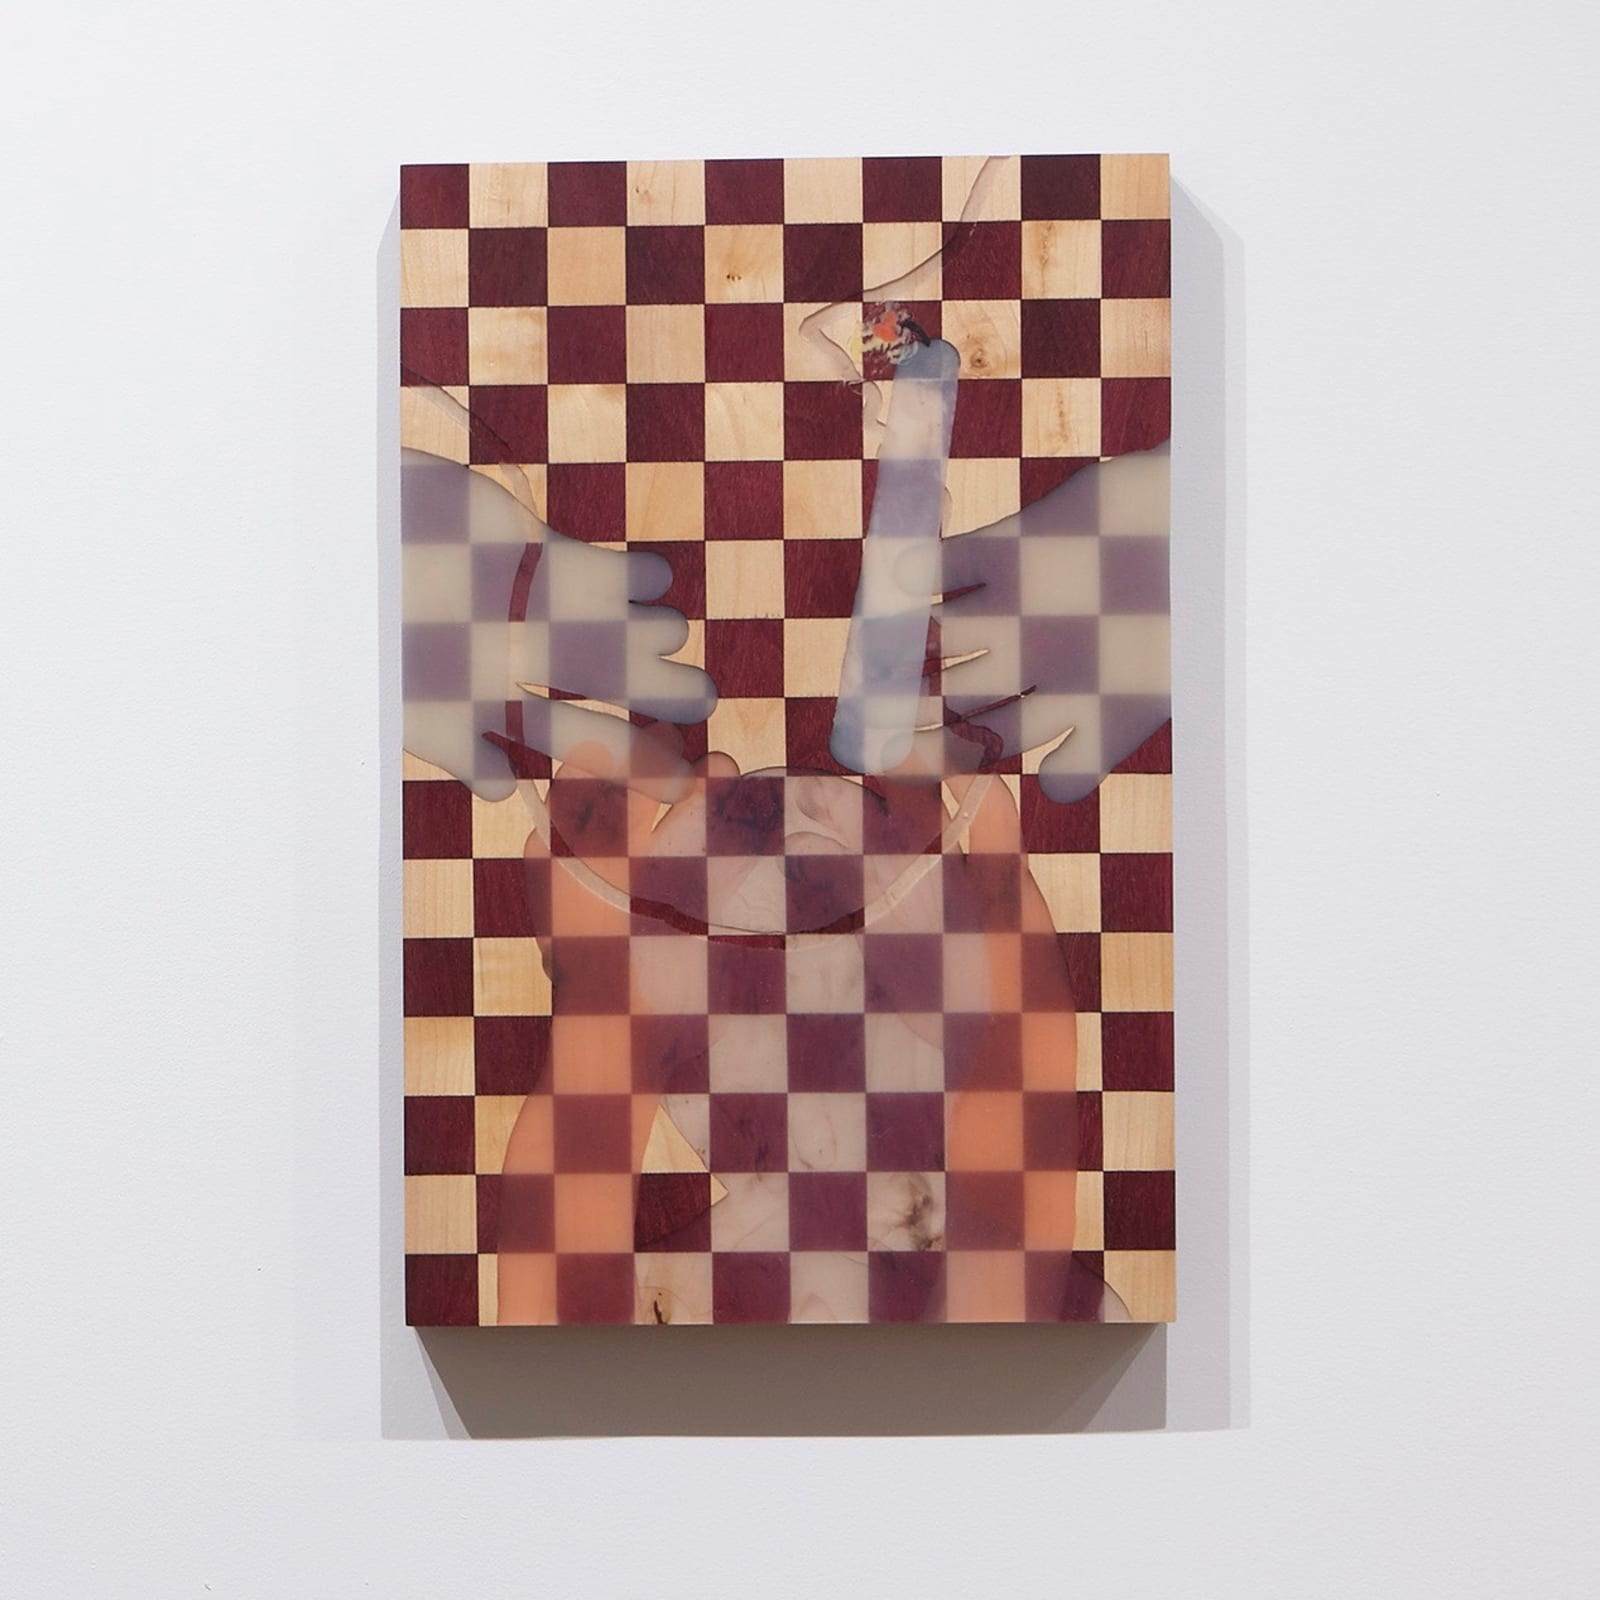 Tommy Coleman  Bicameral By Candle, 2019  UV Resistant Polyester Resin, Glow-in-the-dark Pigment, and Transparent Pigment on Maple and Purple Heart Hard Wood Panel  18 x 12 in (45.7 x 30.5 cm)